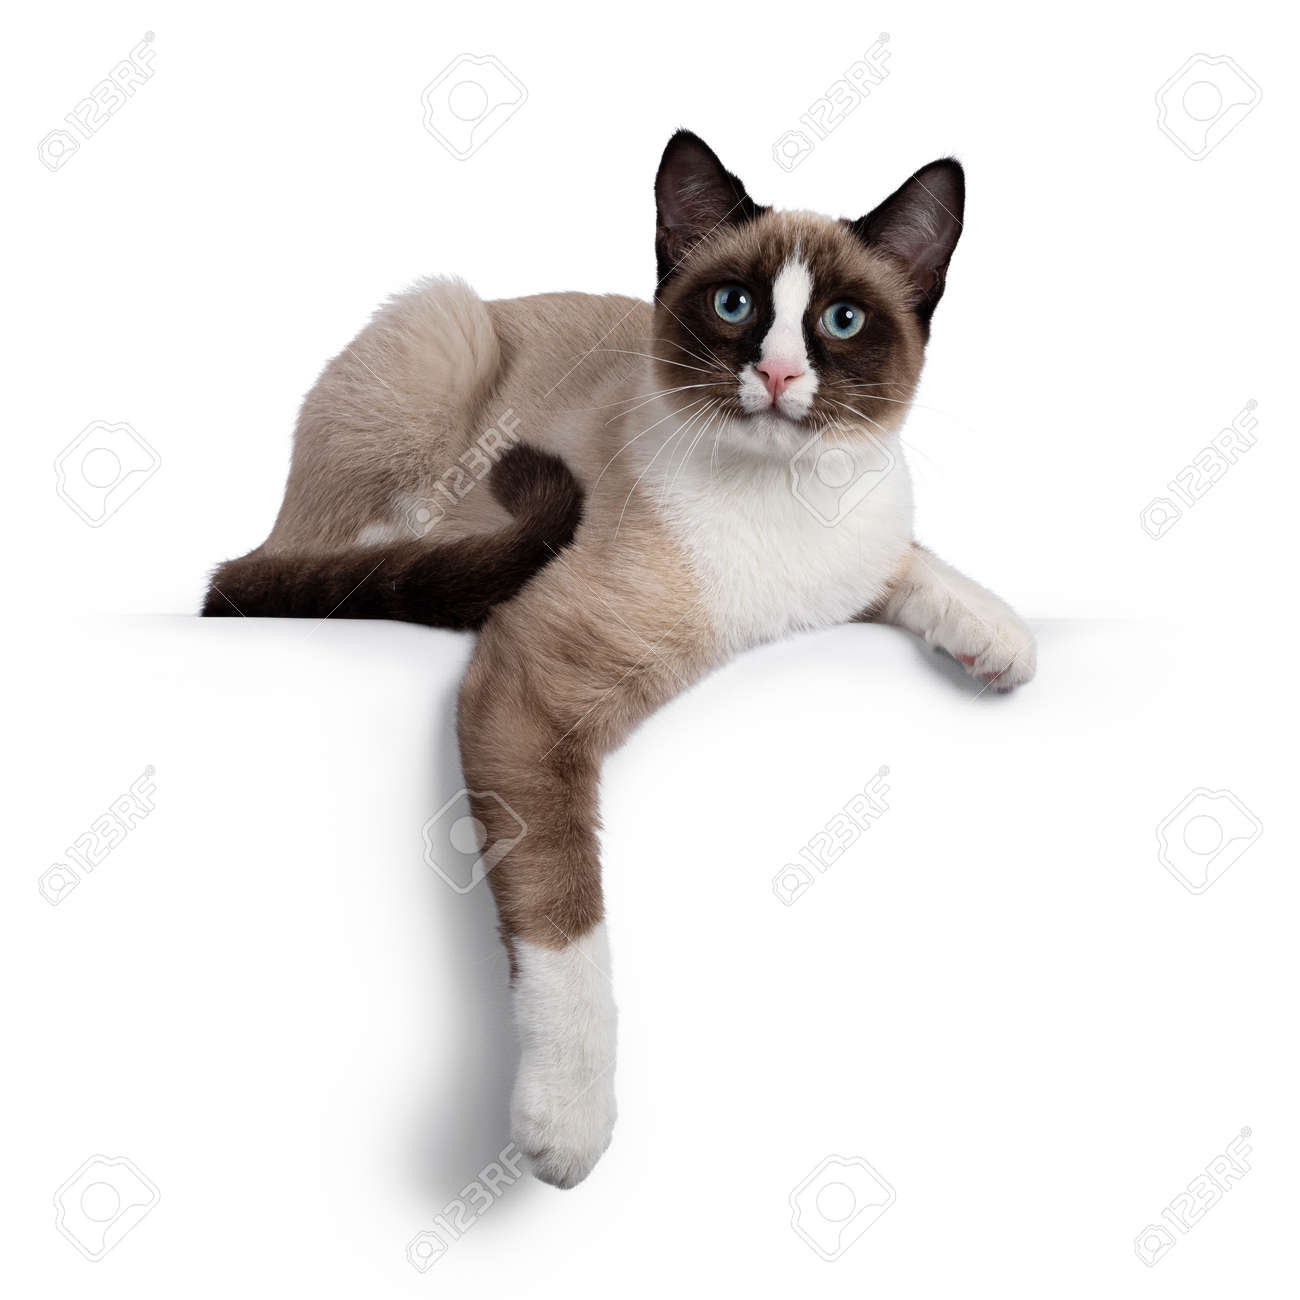 Adorable young Snowshoe cat kitten, laying down side ways. One paw hanging relaxed over edge. Looking towards camera with the typical blue eyes. Isolated on a white background. - 173357274